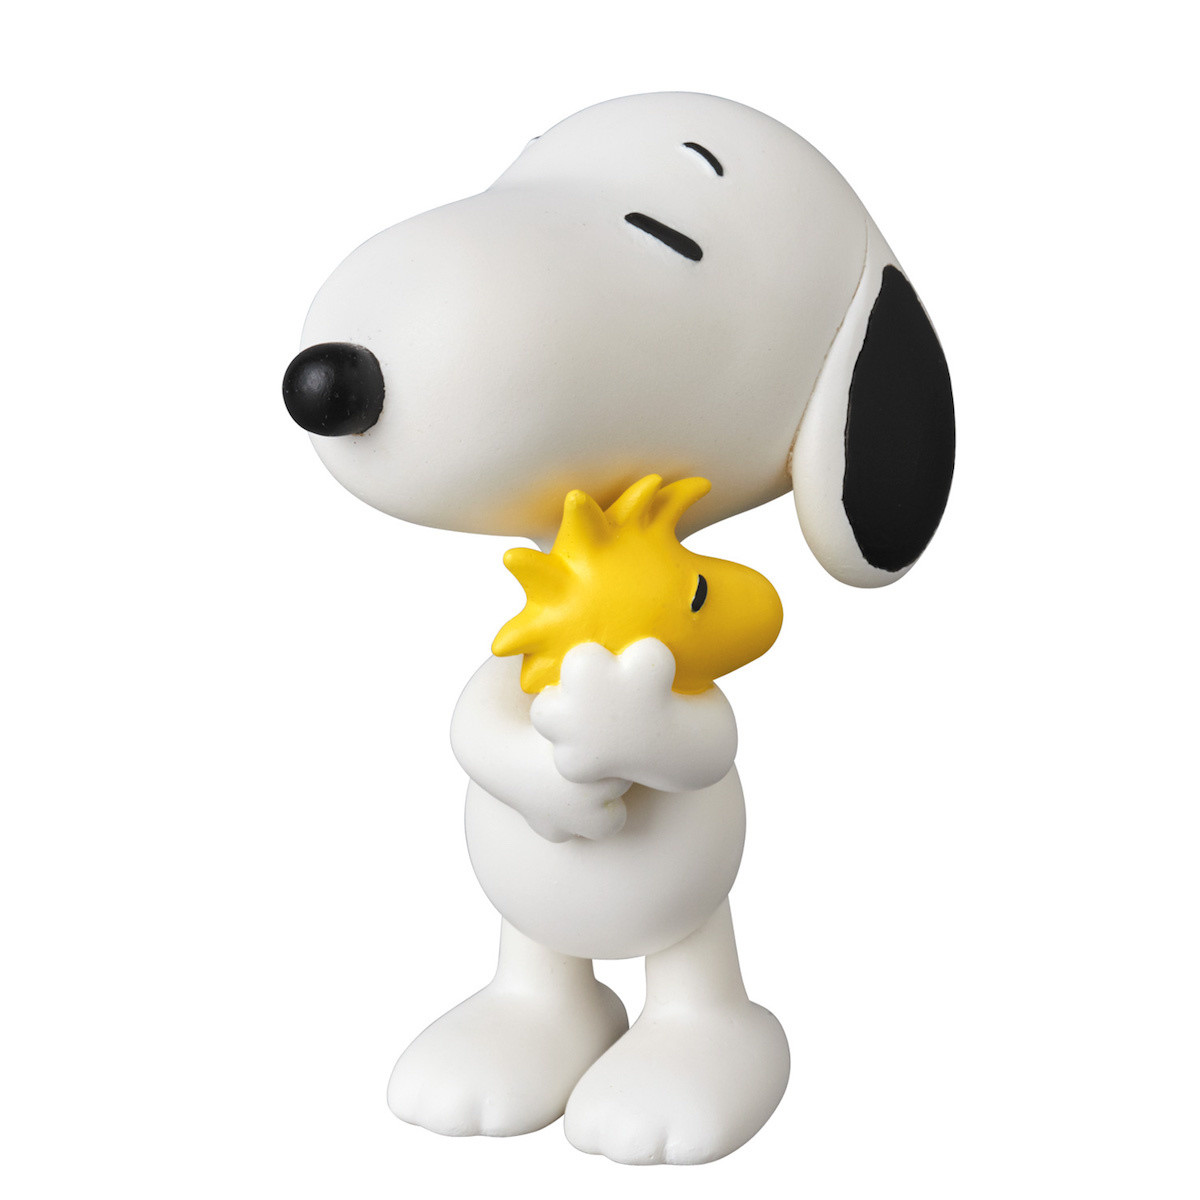 bf14b476be Ultra Detail Figure Peanuts Series 7  Snoopy Holding Woodstock ...